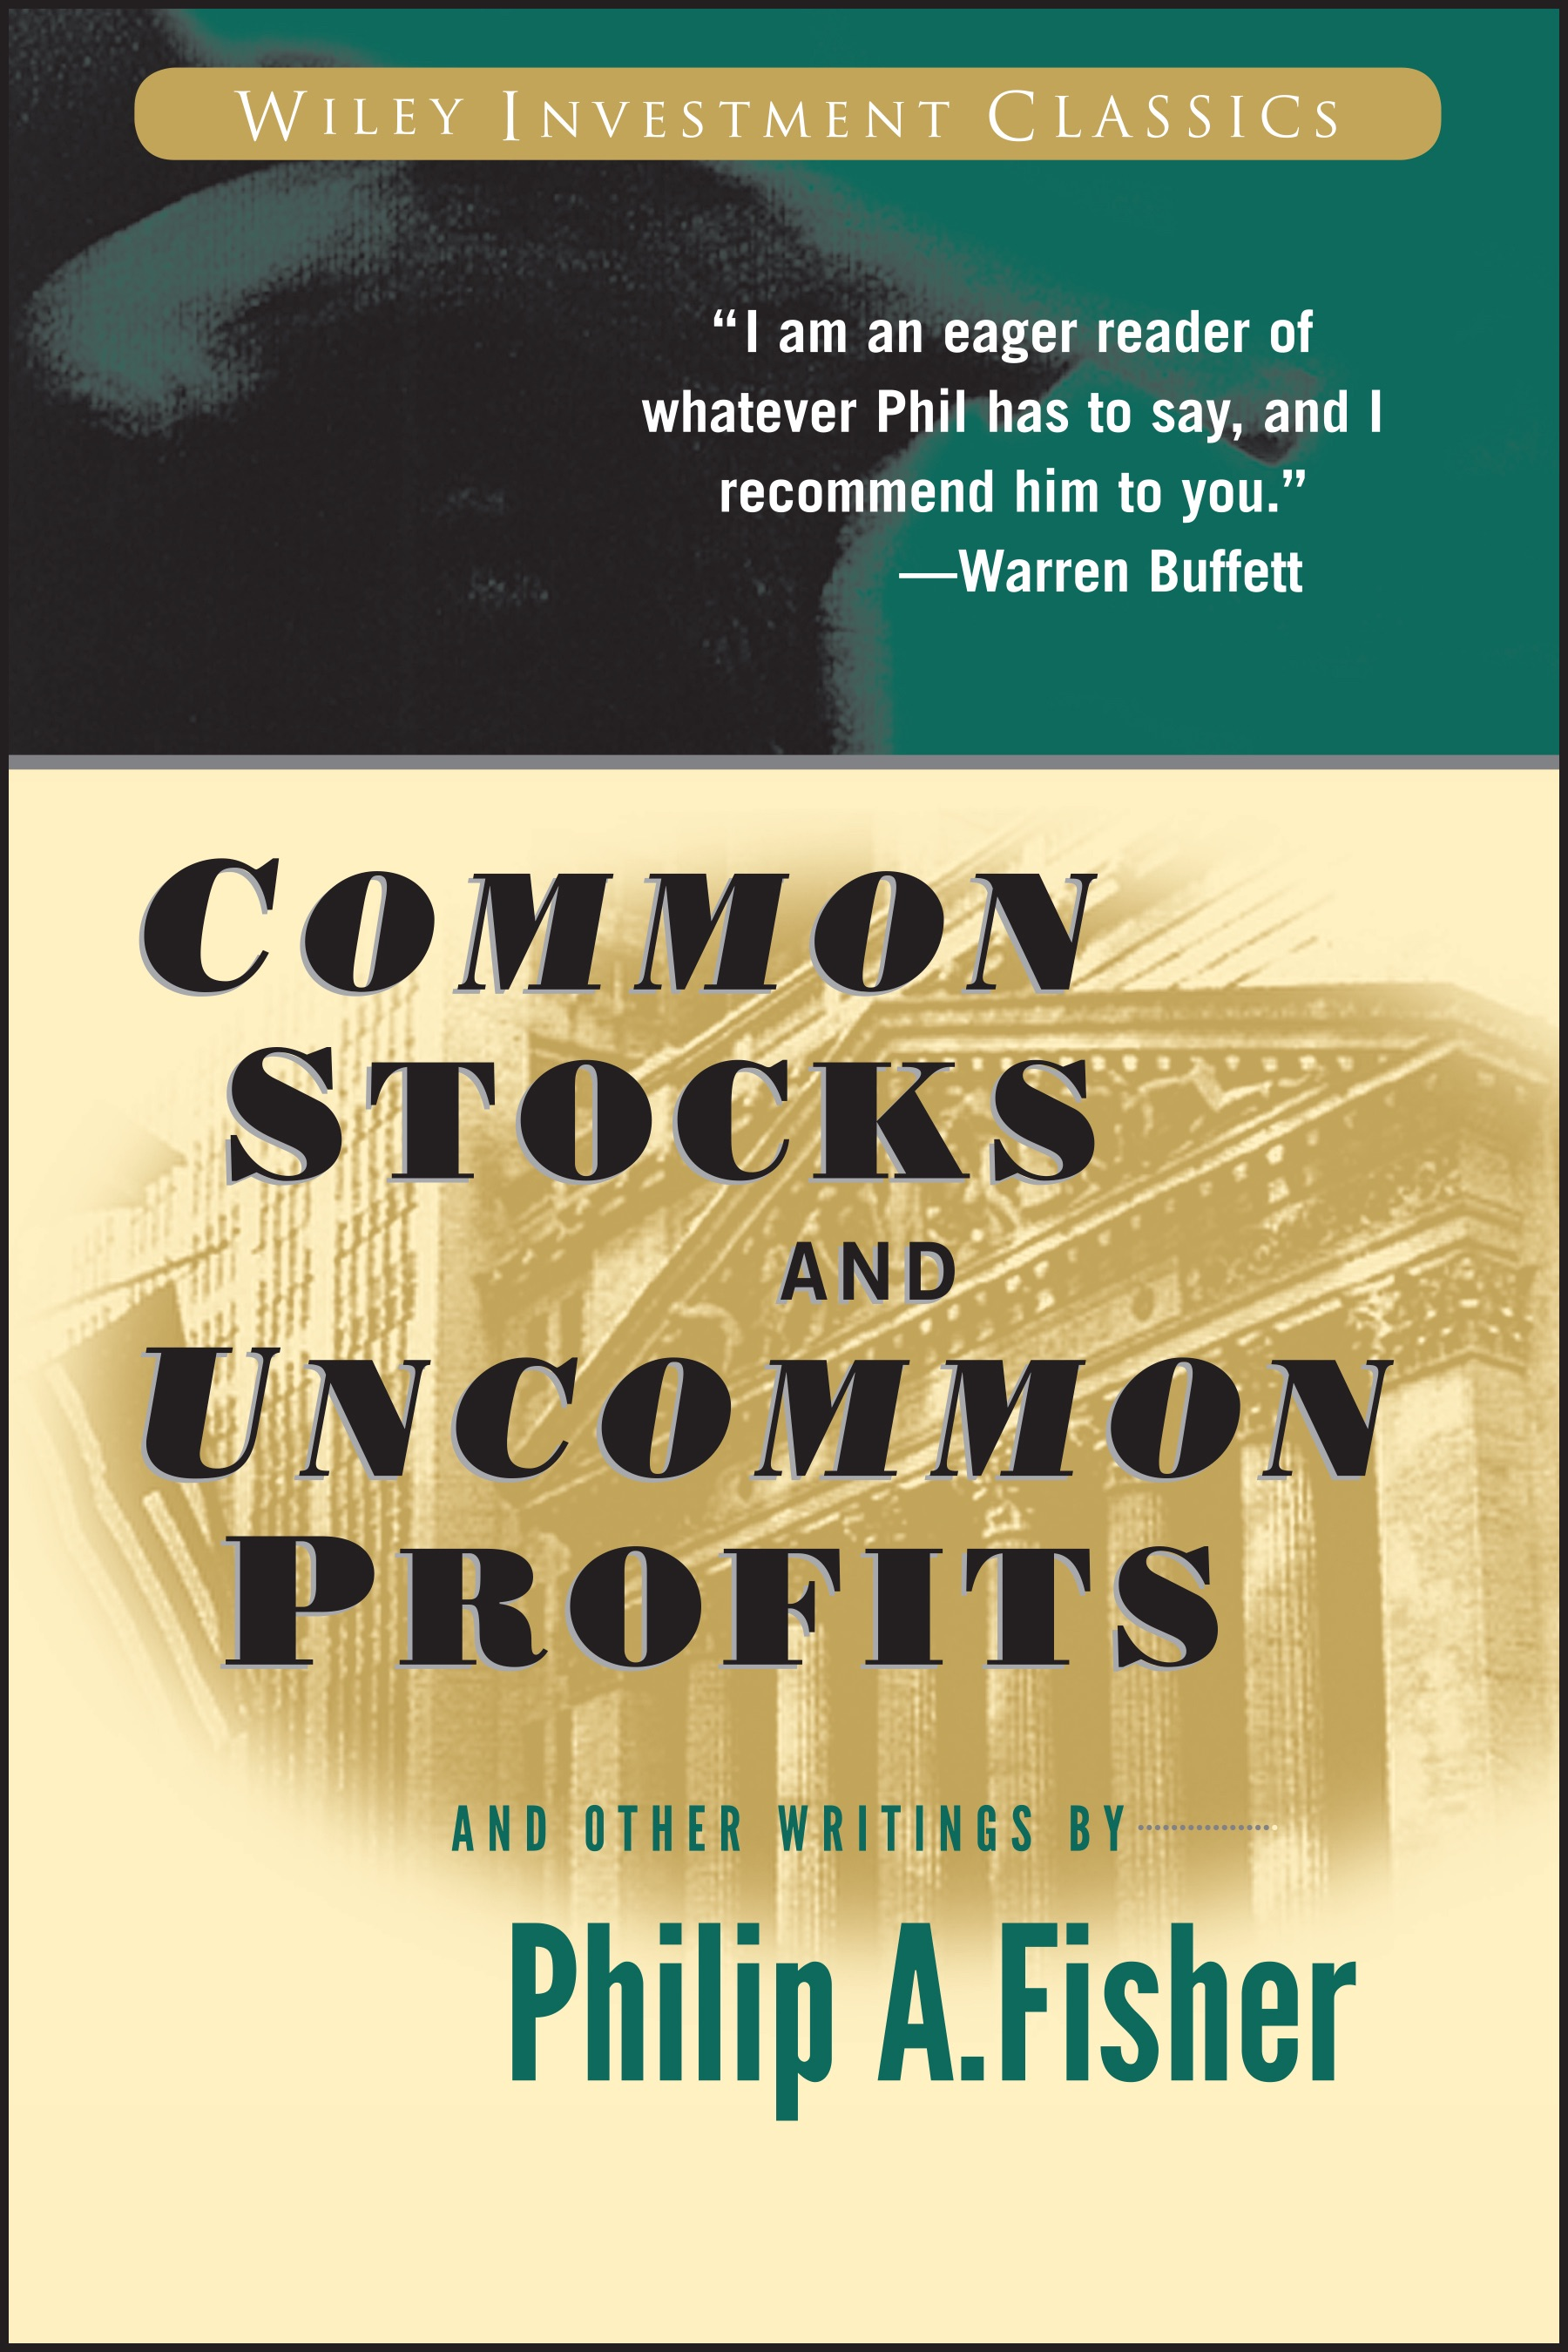 Book Cover of Common Stocks and Uncommon Profits and Other Writings